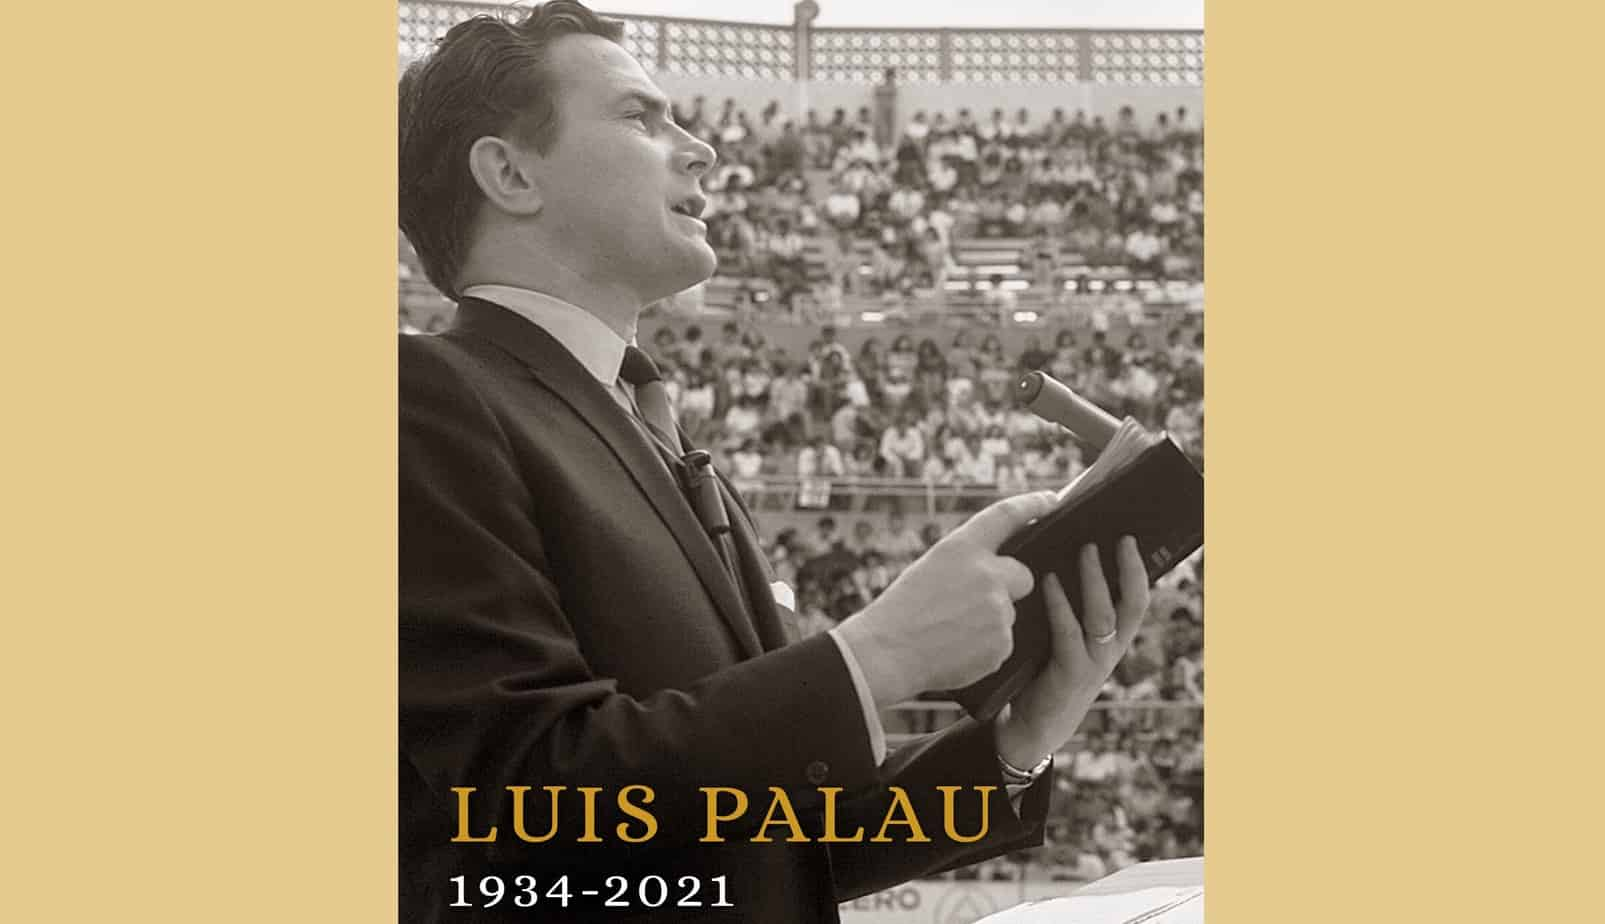 Luis Palau Memorial Service – Watch the live stream this weekend